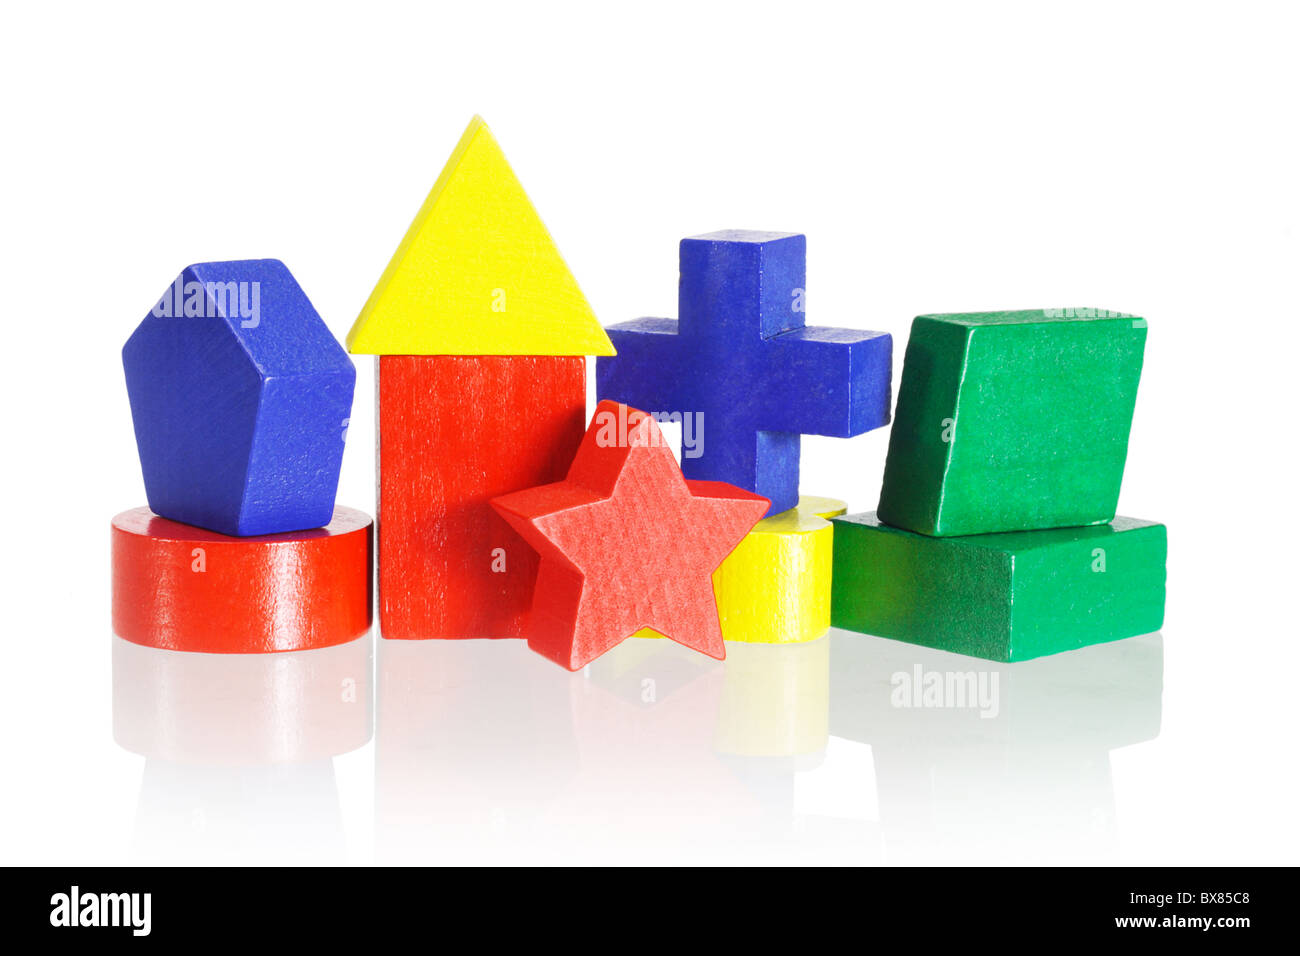 Colorful geometrical blocks arranged on white background with reflection - Stock Image